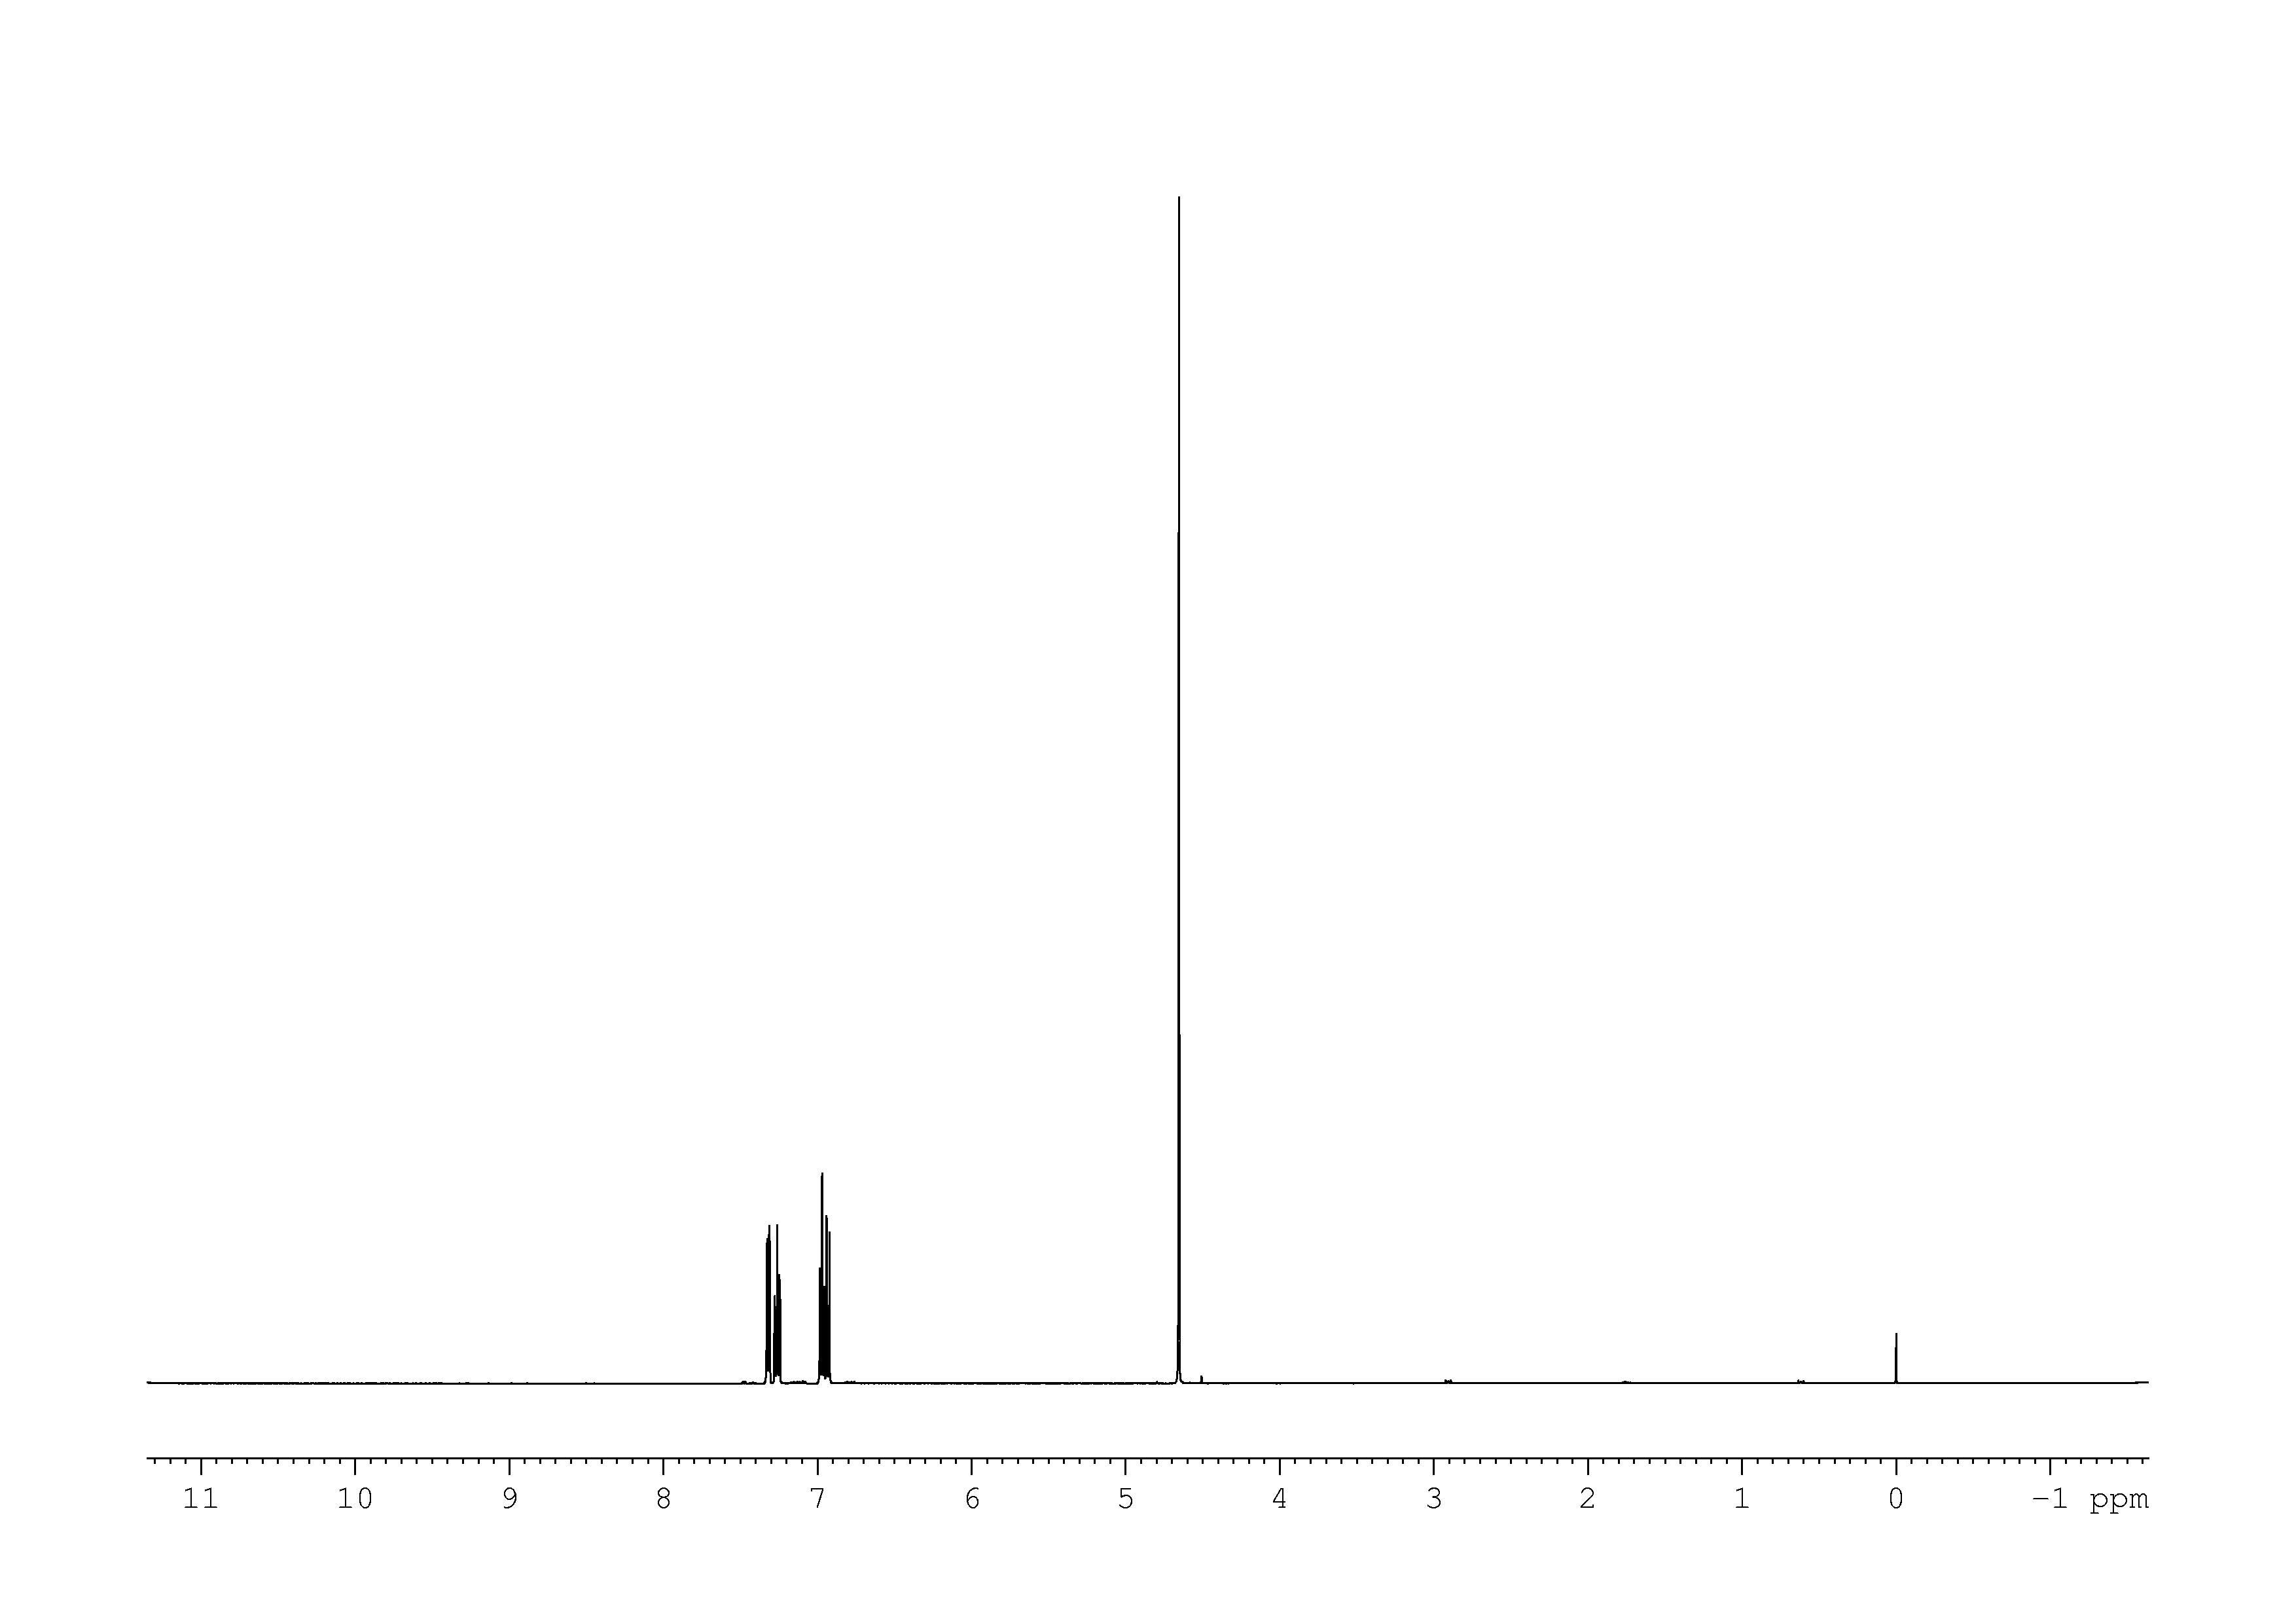 1D 1H, 7.4 spectrum for saligenin